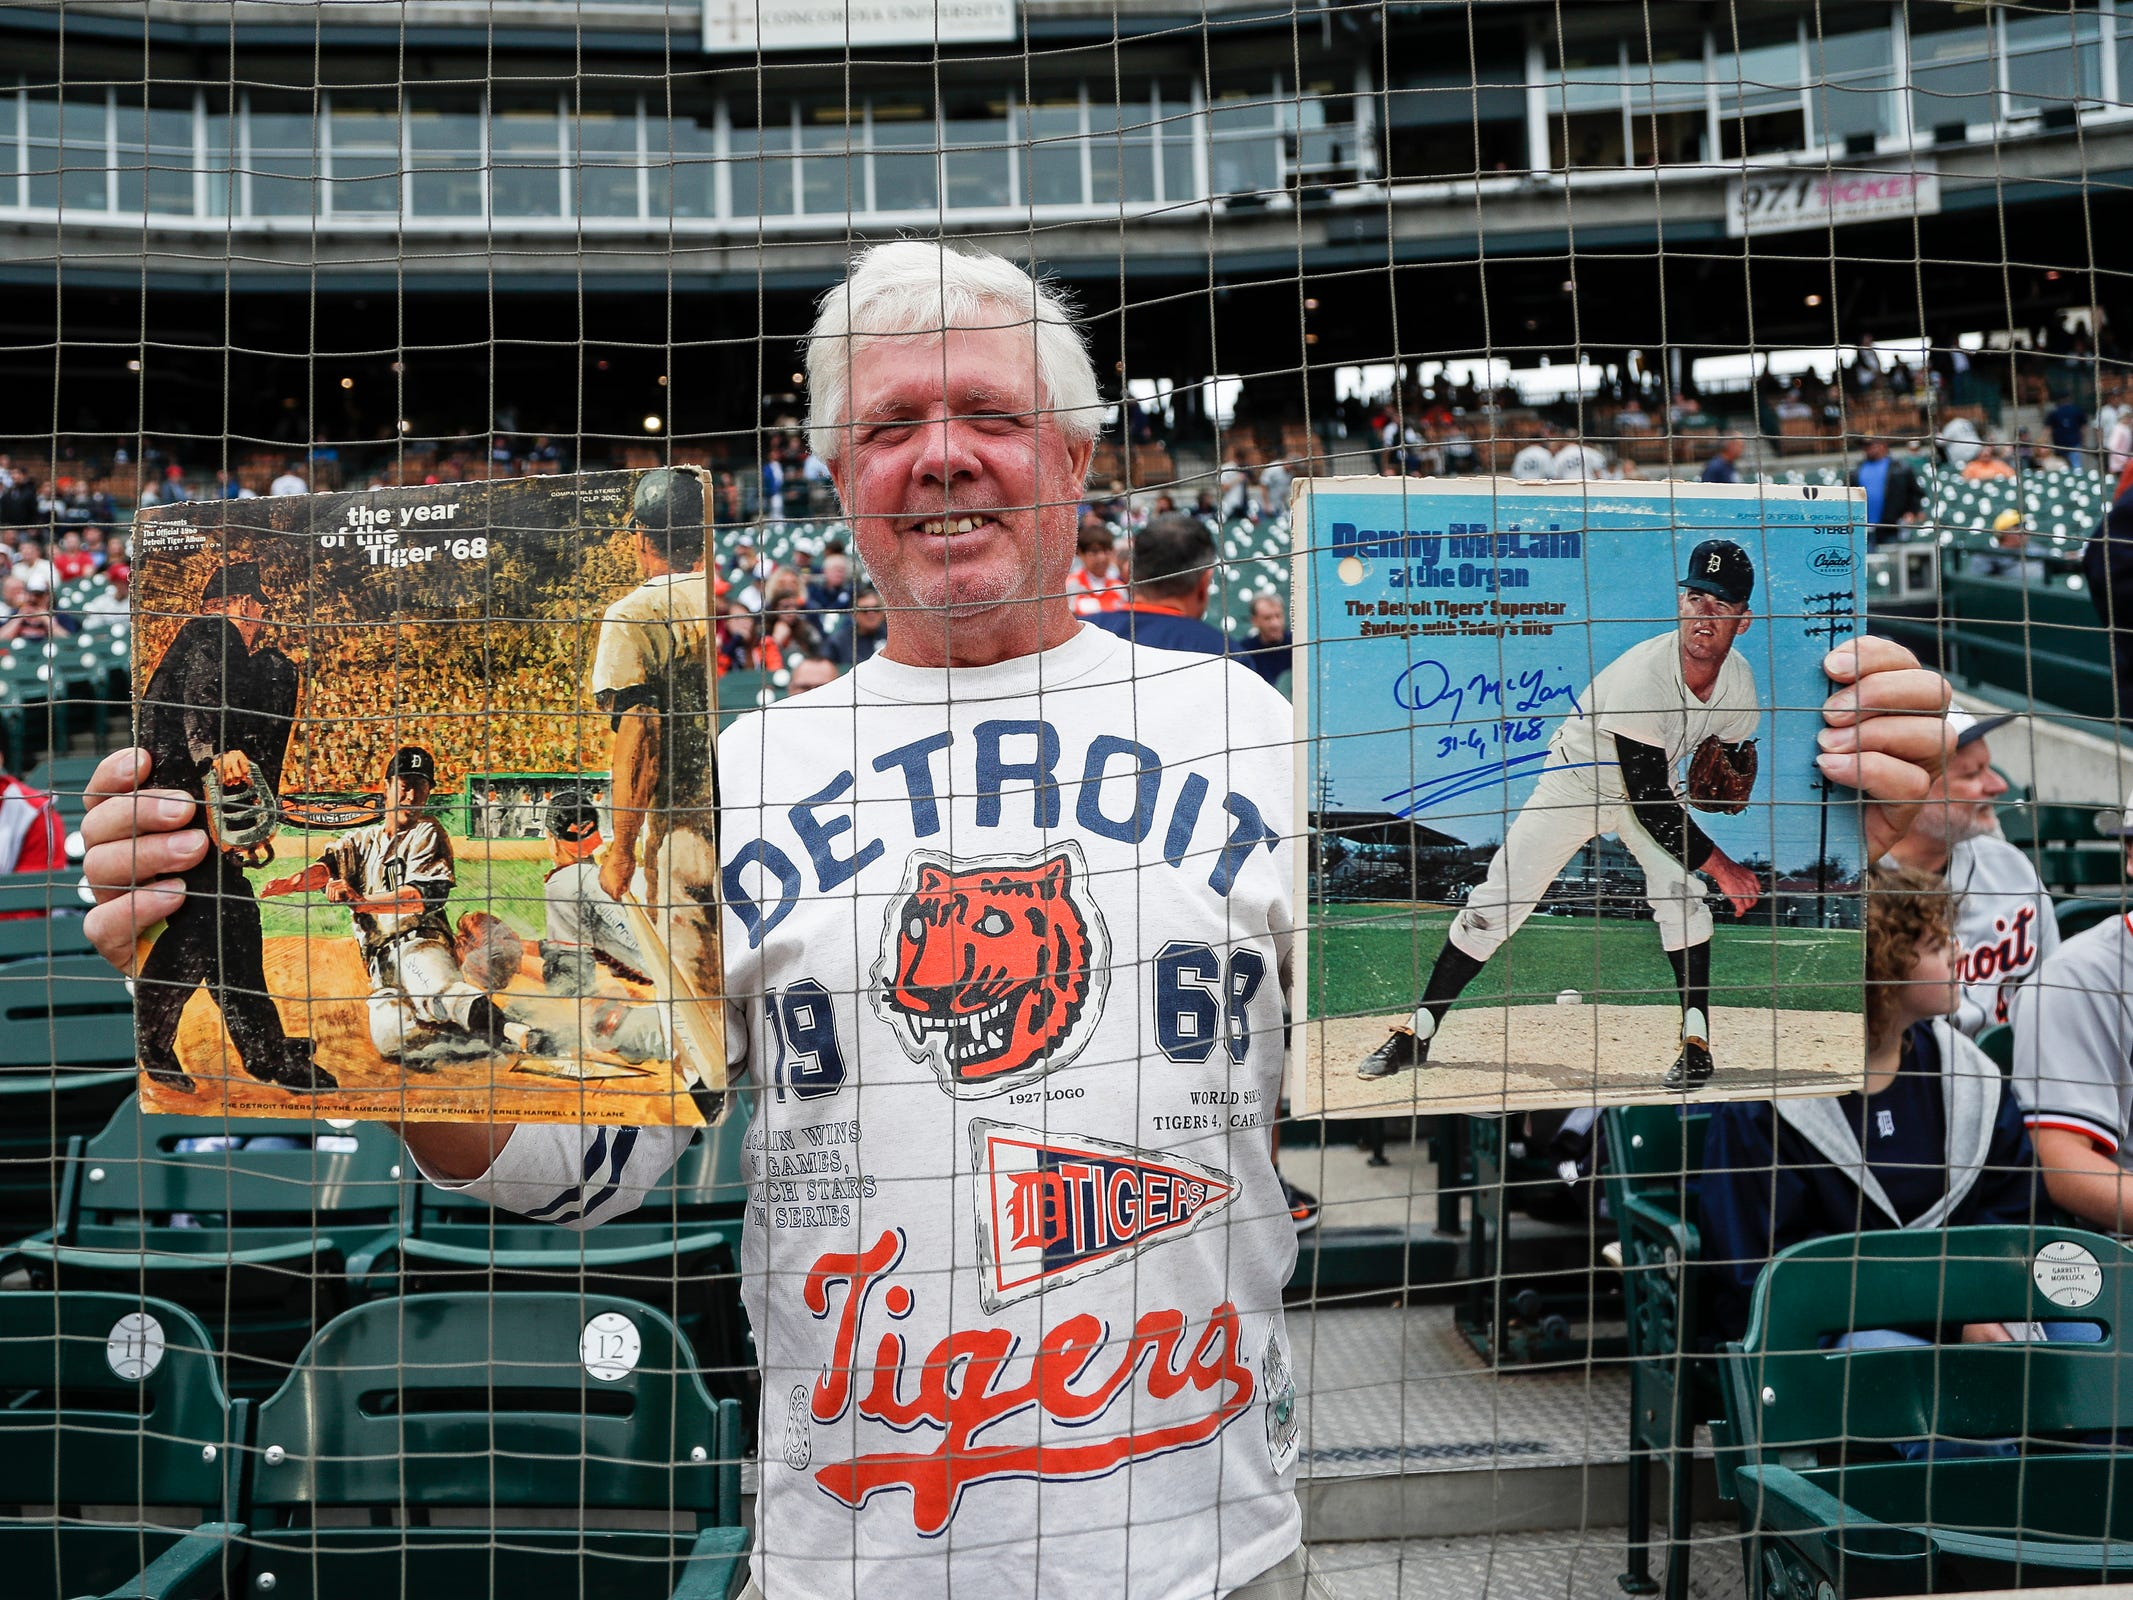 Marion Kim of Beach City, Ohio, poses for a photo with two old Detroit Tigers records during the celebration of the 50th anniversary of the 1968 World Series championship at Comerica Park in Detroit, Saturday, Sept. 8, 2018.